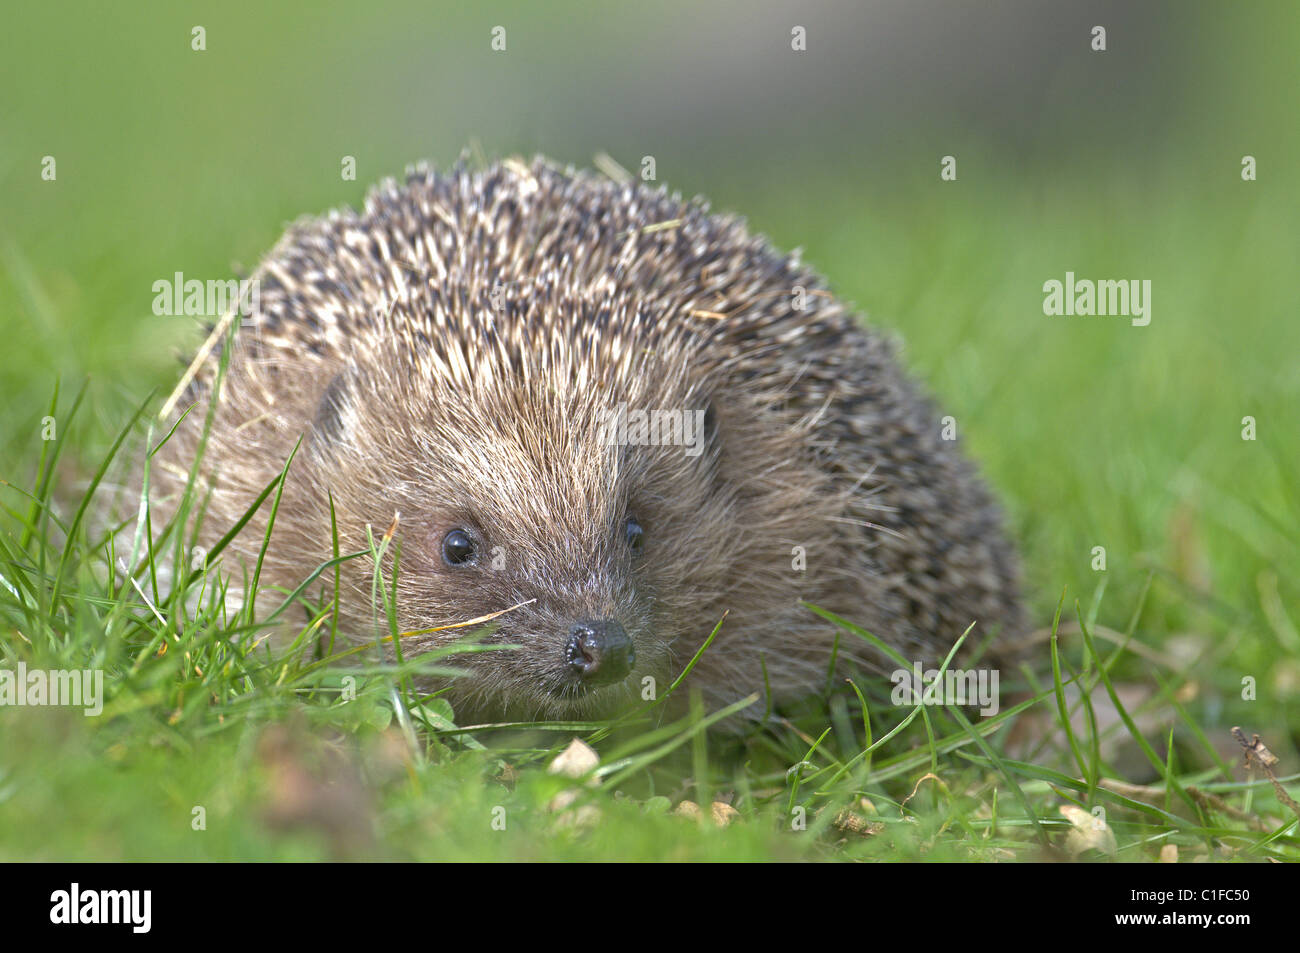 HEDGEHOG ERINACEUS EUROPAEUS ON GRASS UK - Stock Image